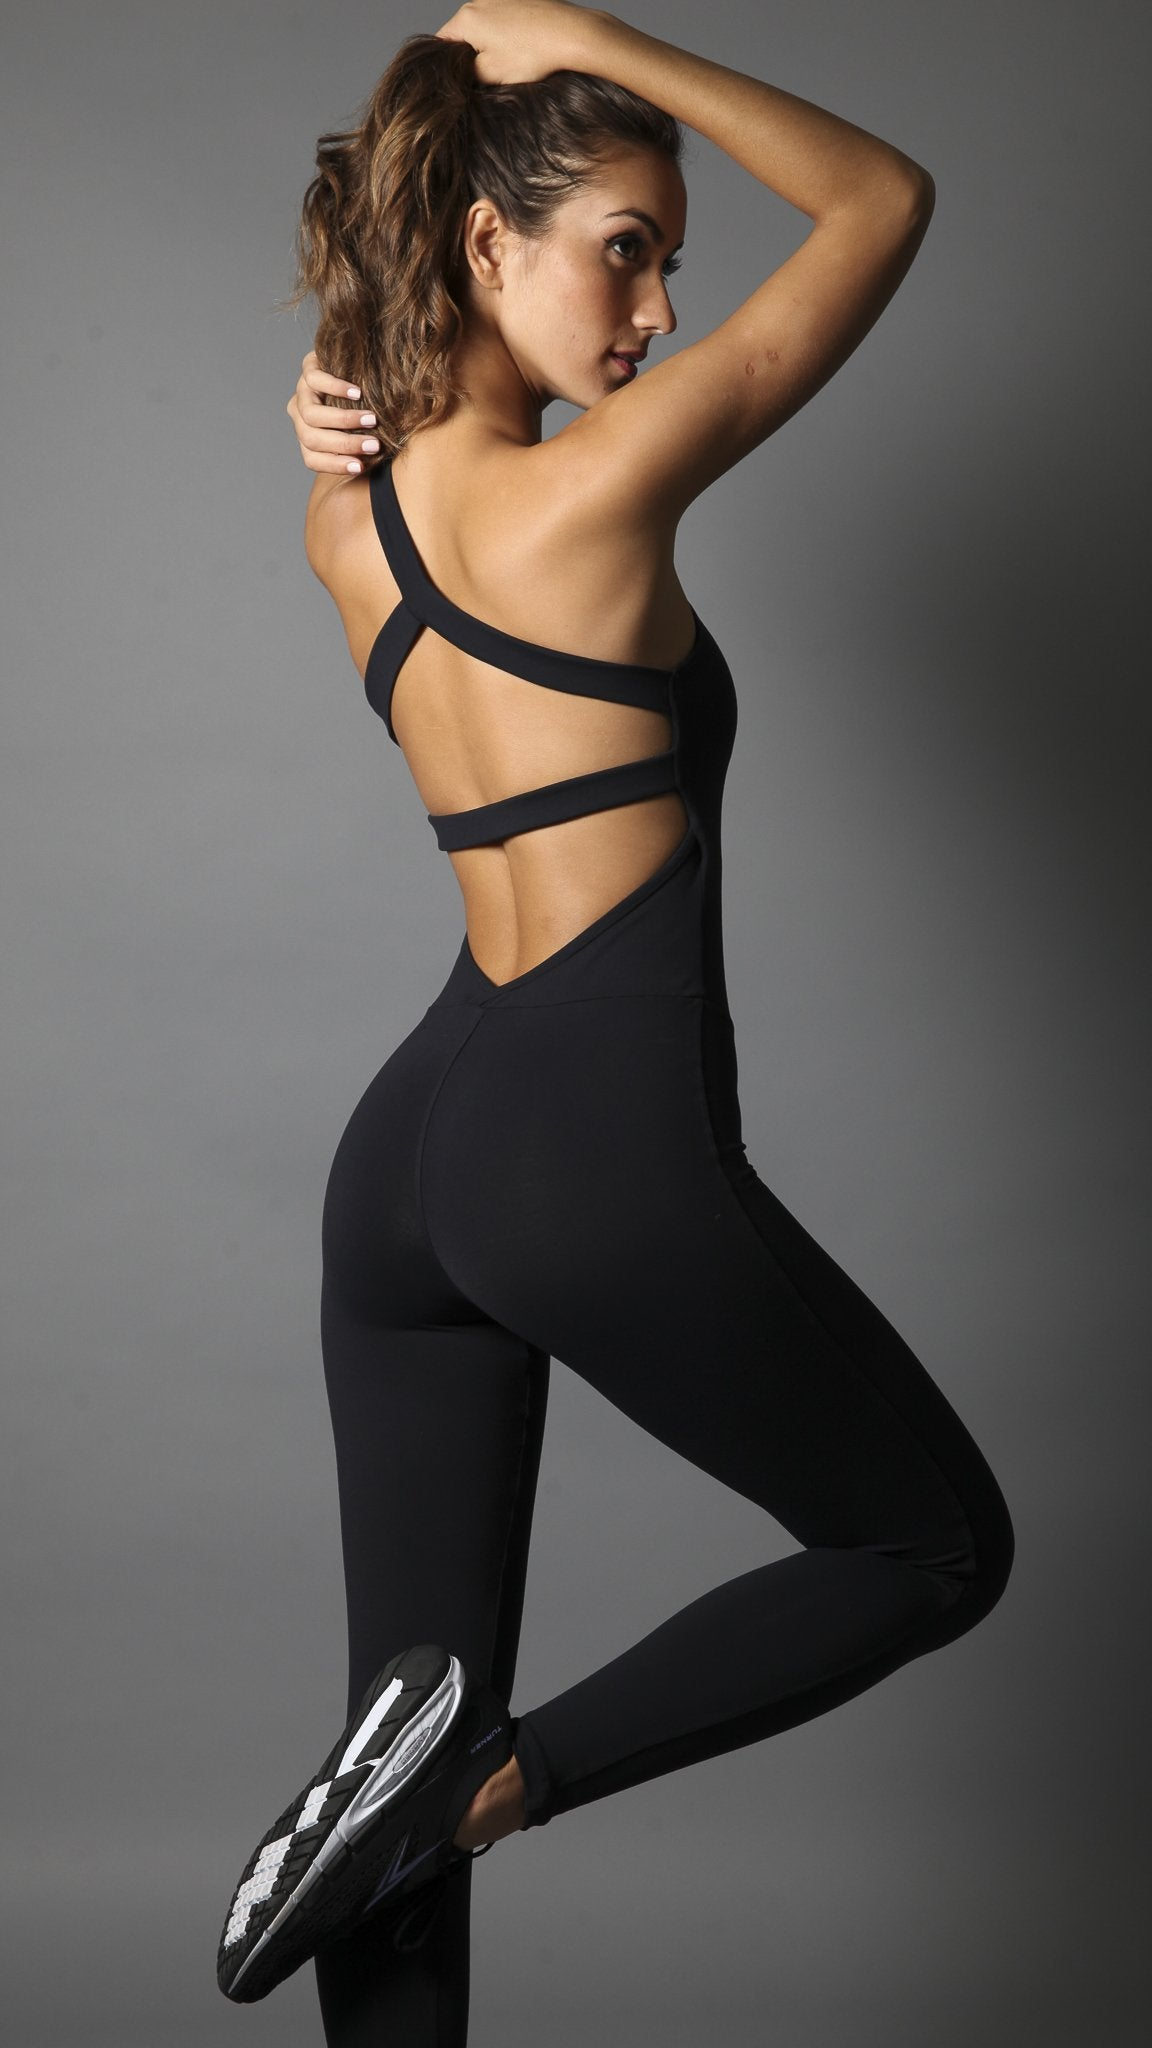 Black open back with wide elastic band on one shoulder and breast for support